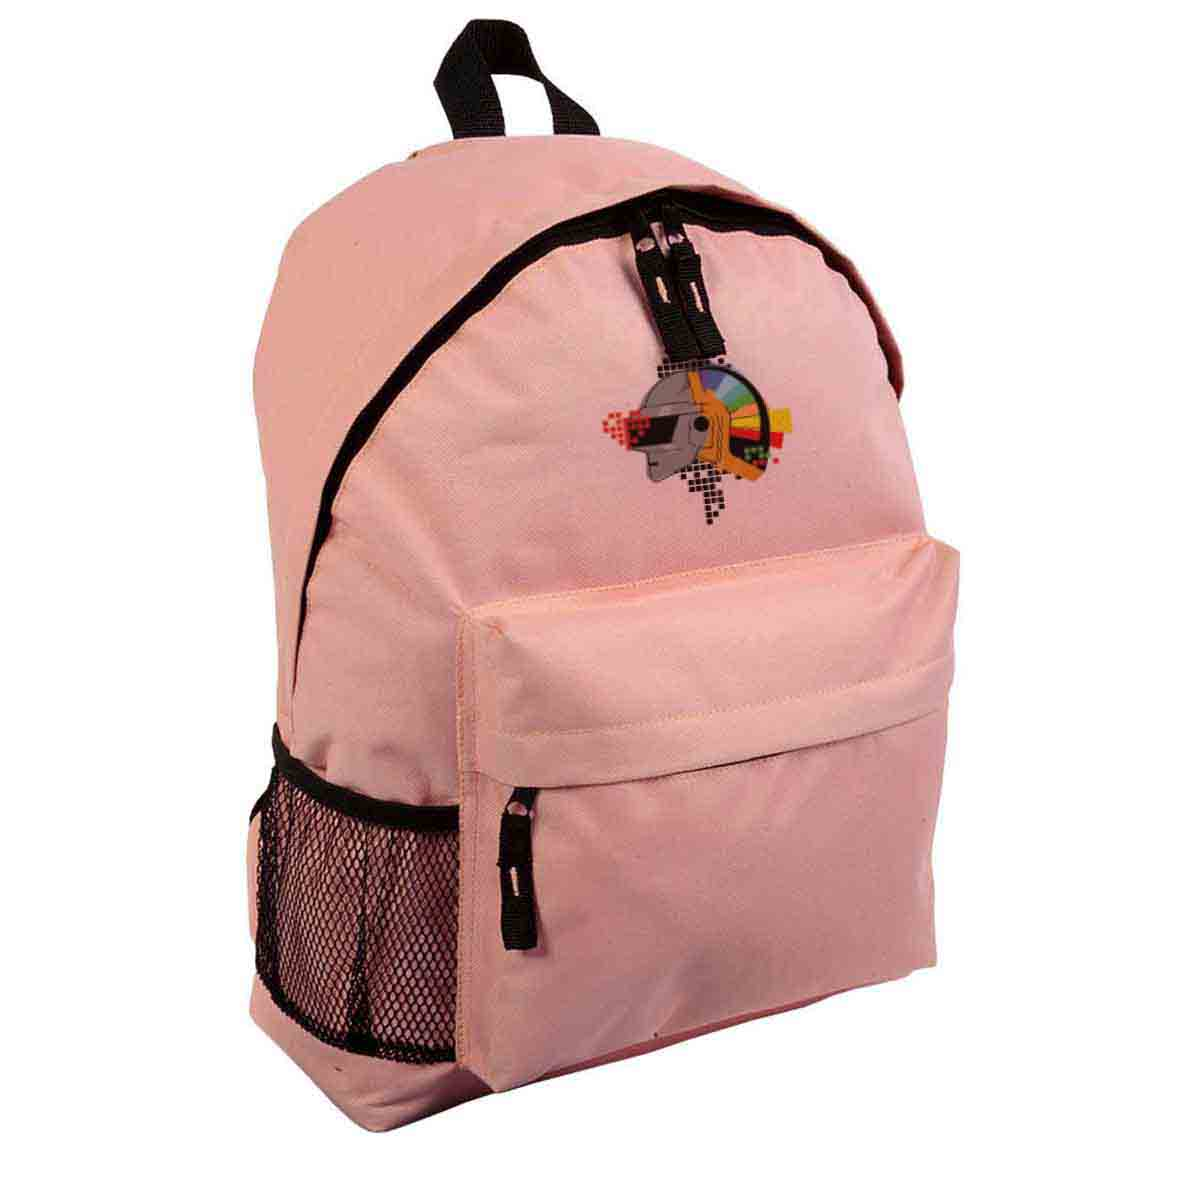 600d polyester backpack with zipped front pocket  - Pink sip-1310112 subl